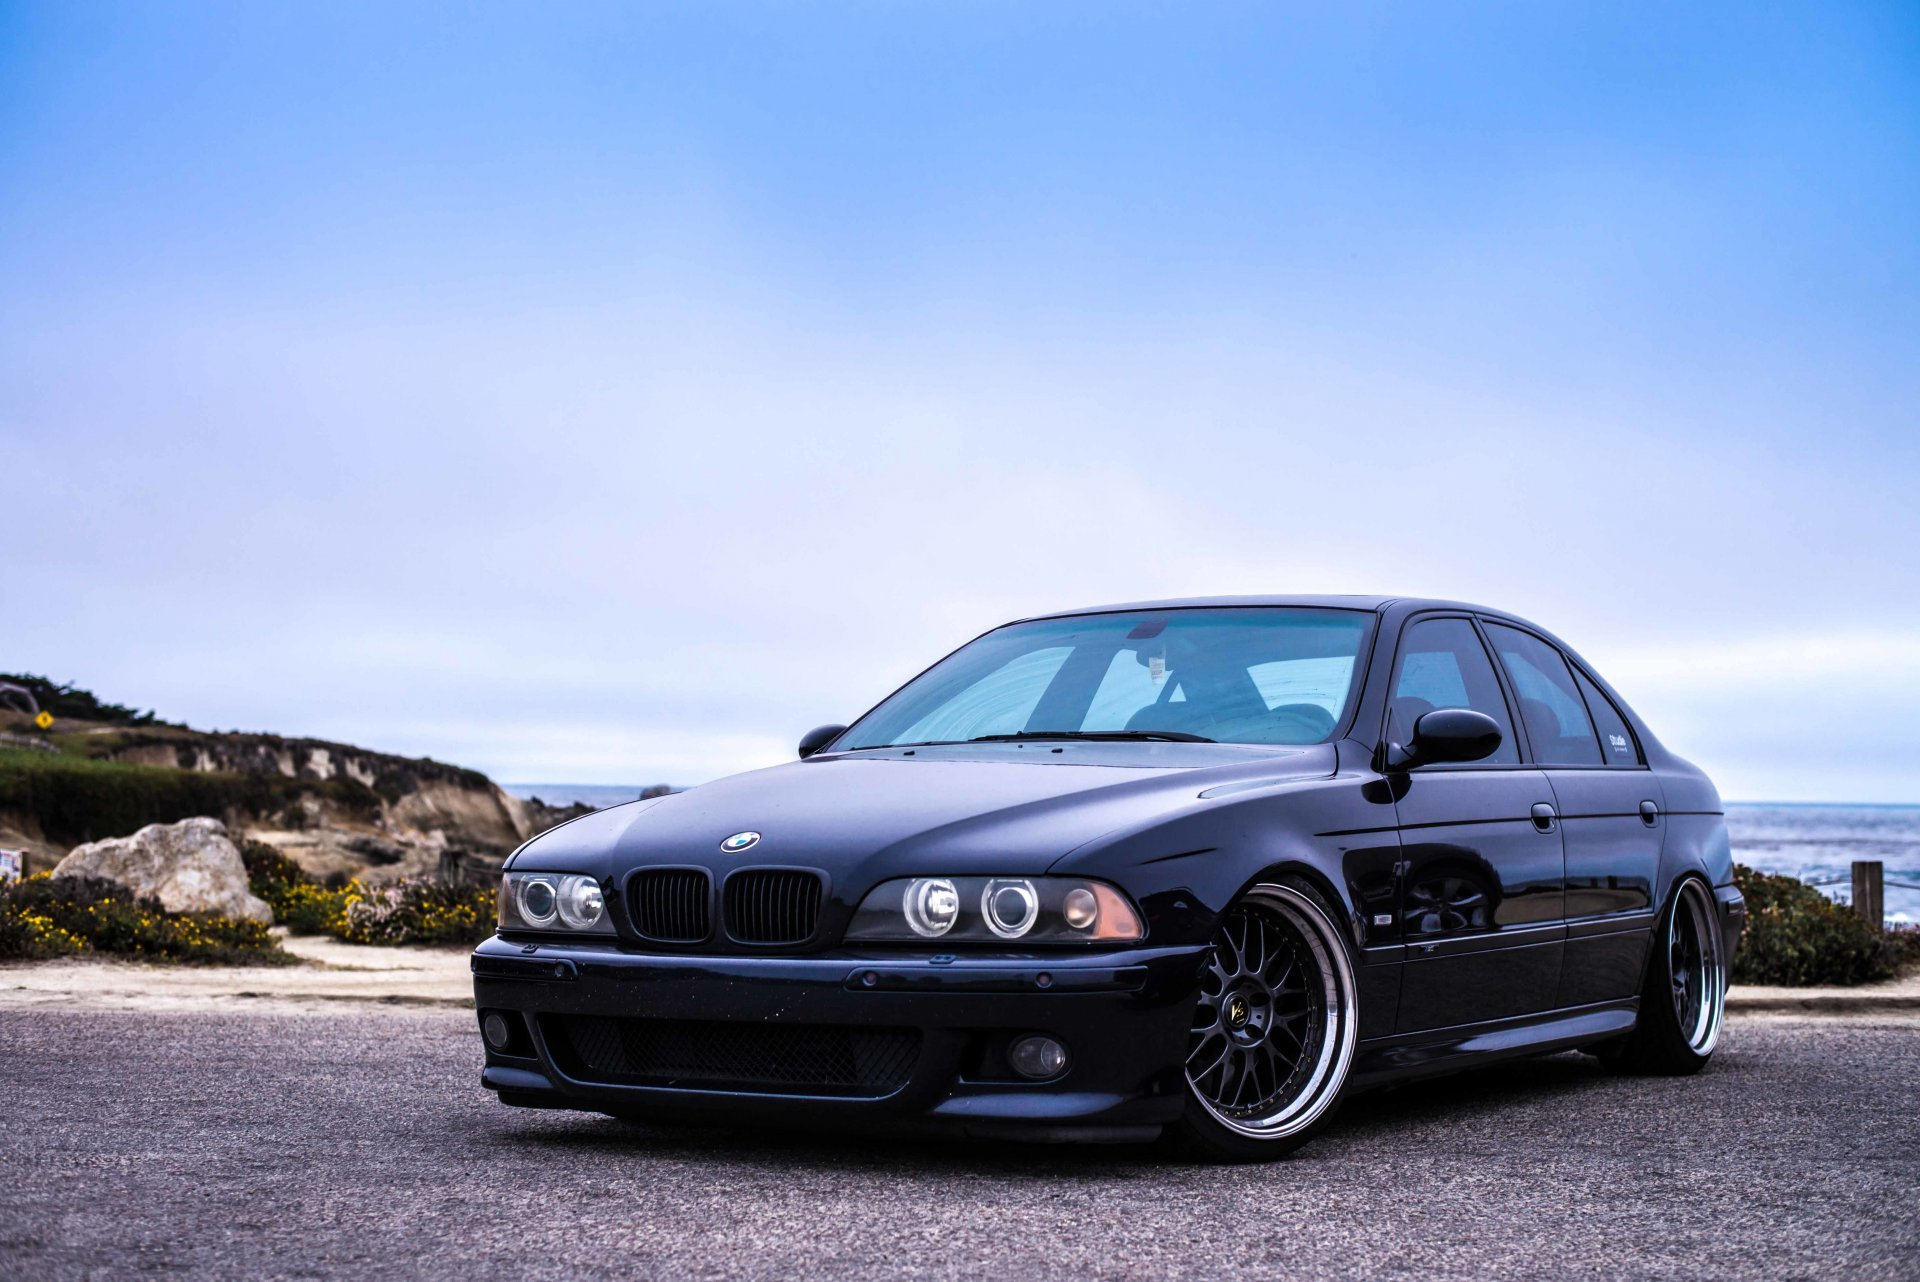 download bmw m5 e39 wallpaper Gallery 65 images [1920x1282 1920x1282